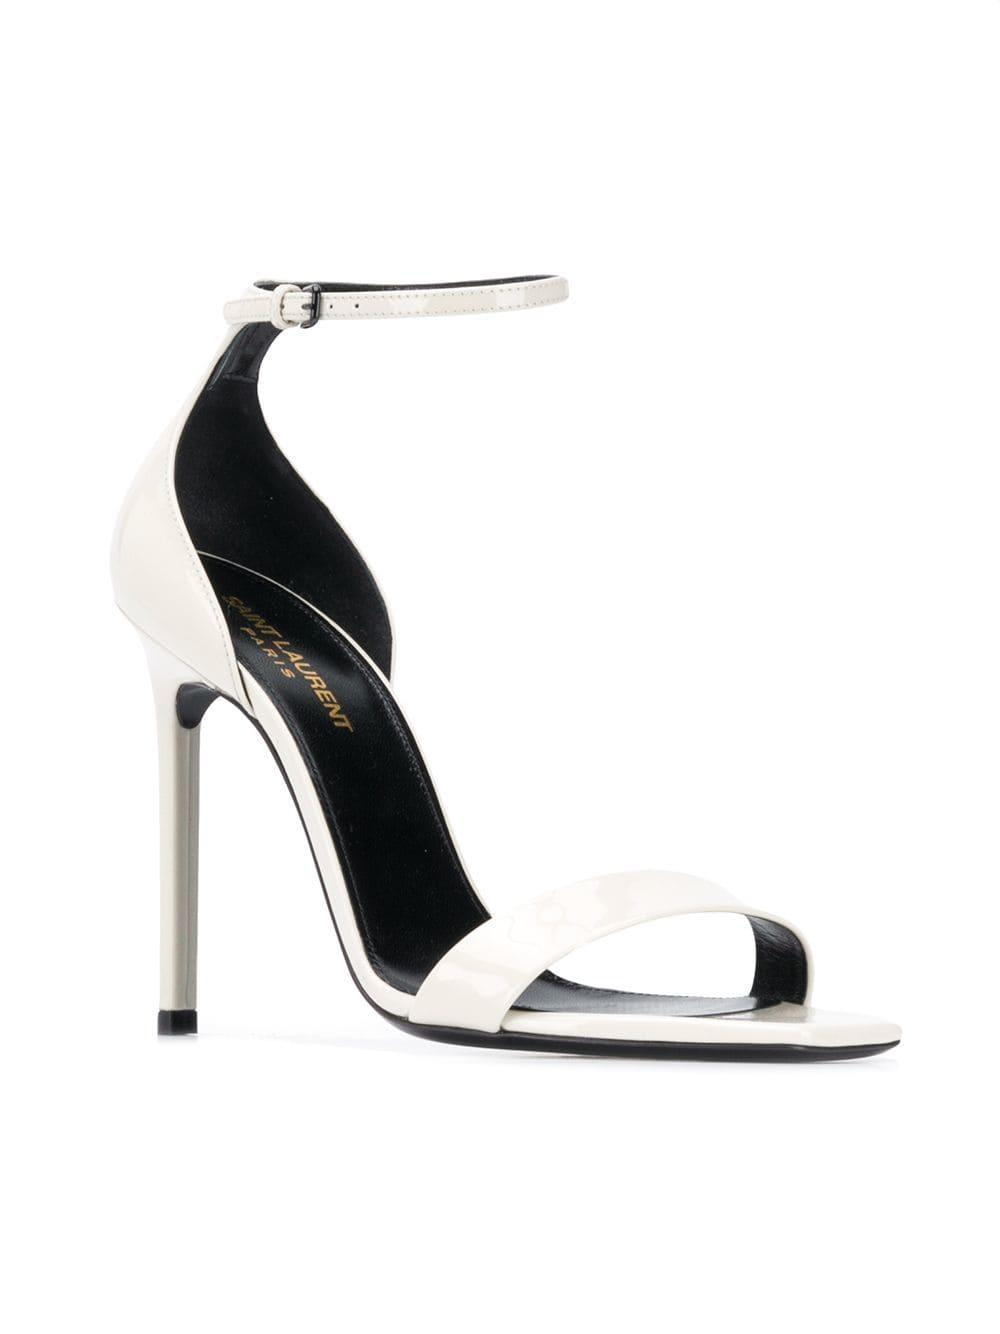 7627fa5acfbe Lyst - Saint Laurent Jane 105 Sandals